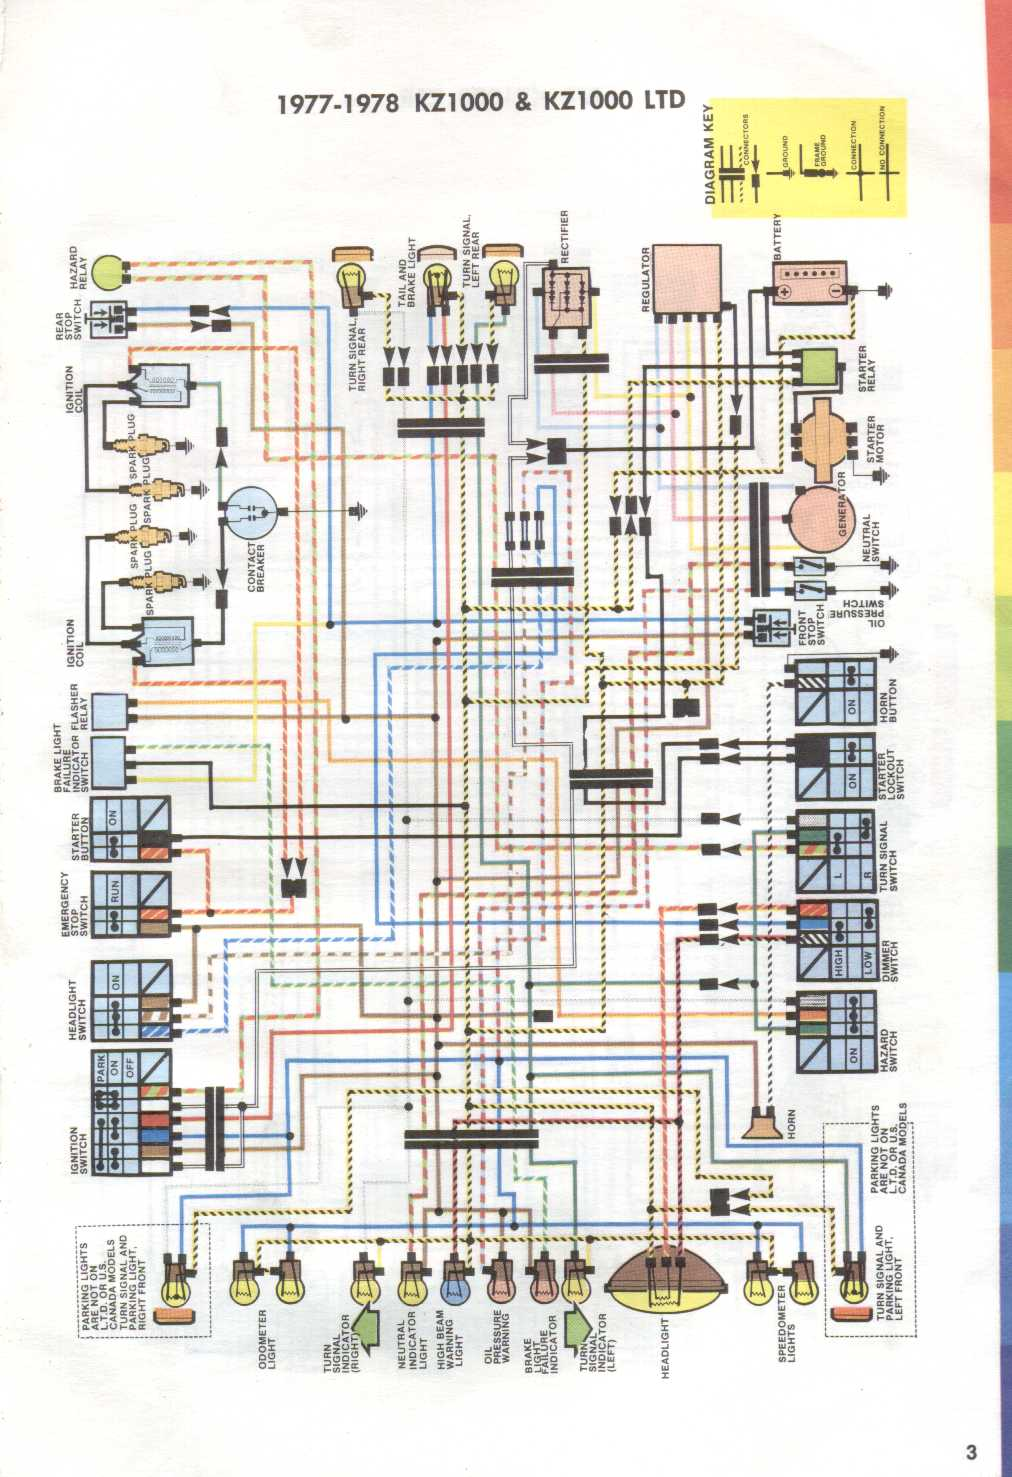 diagram] 77 kawasaki kz1000 wiring diagram full version hd quality wiring  diagram - cubdediagramas.usrdsicilia.it  diagram database - usrdsicilia.it